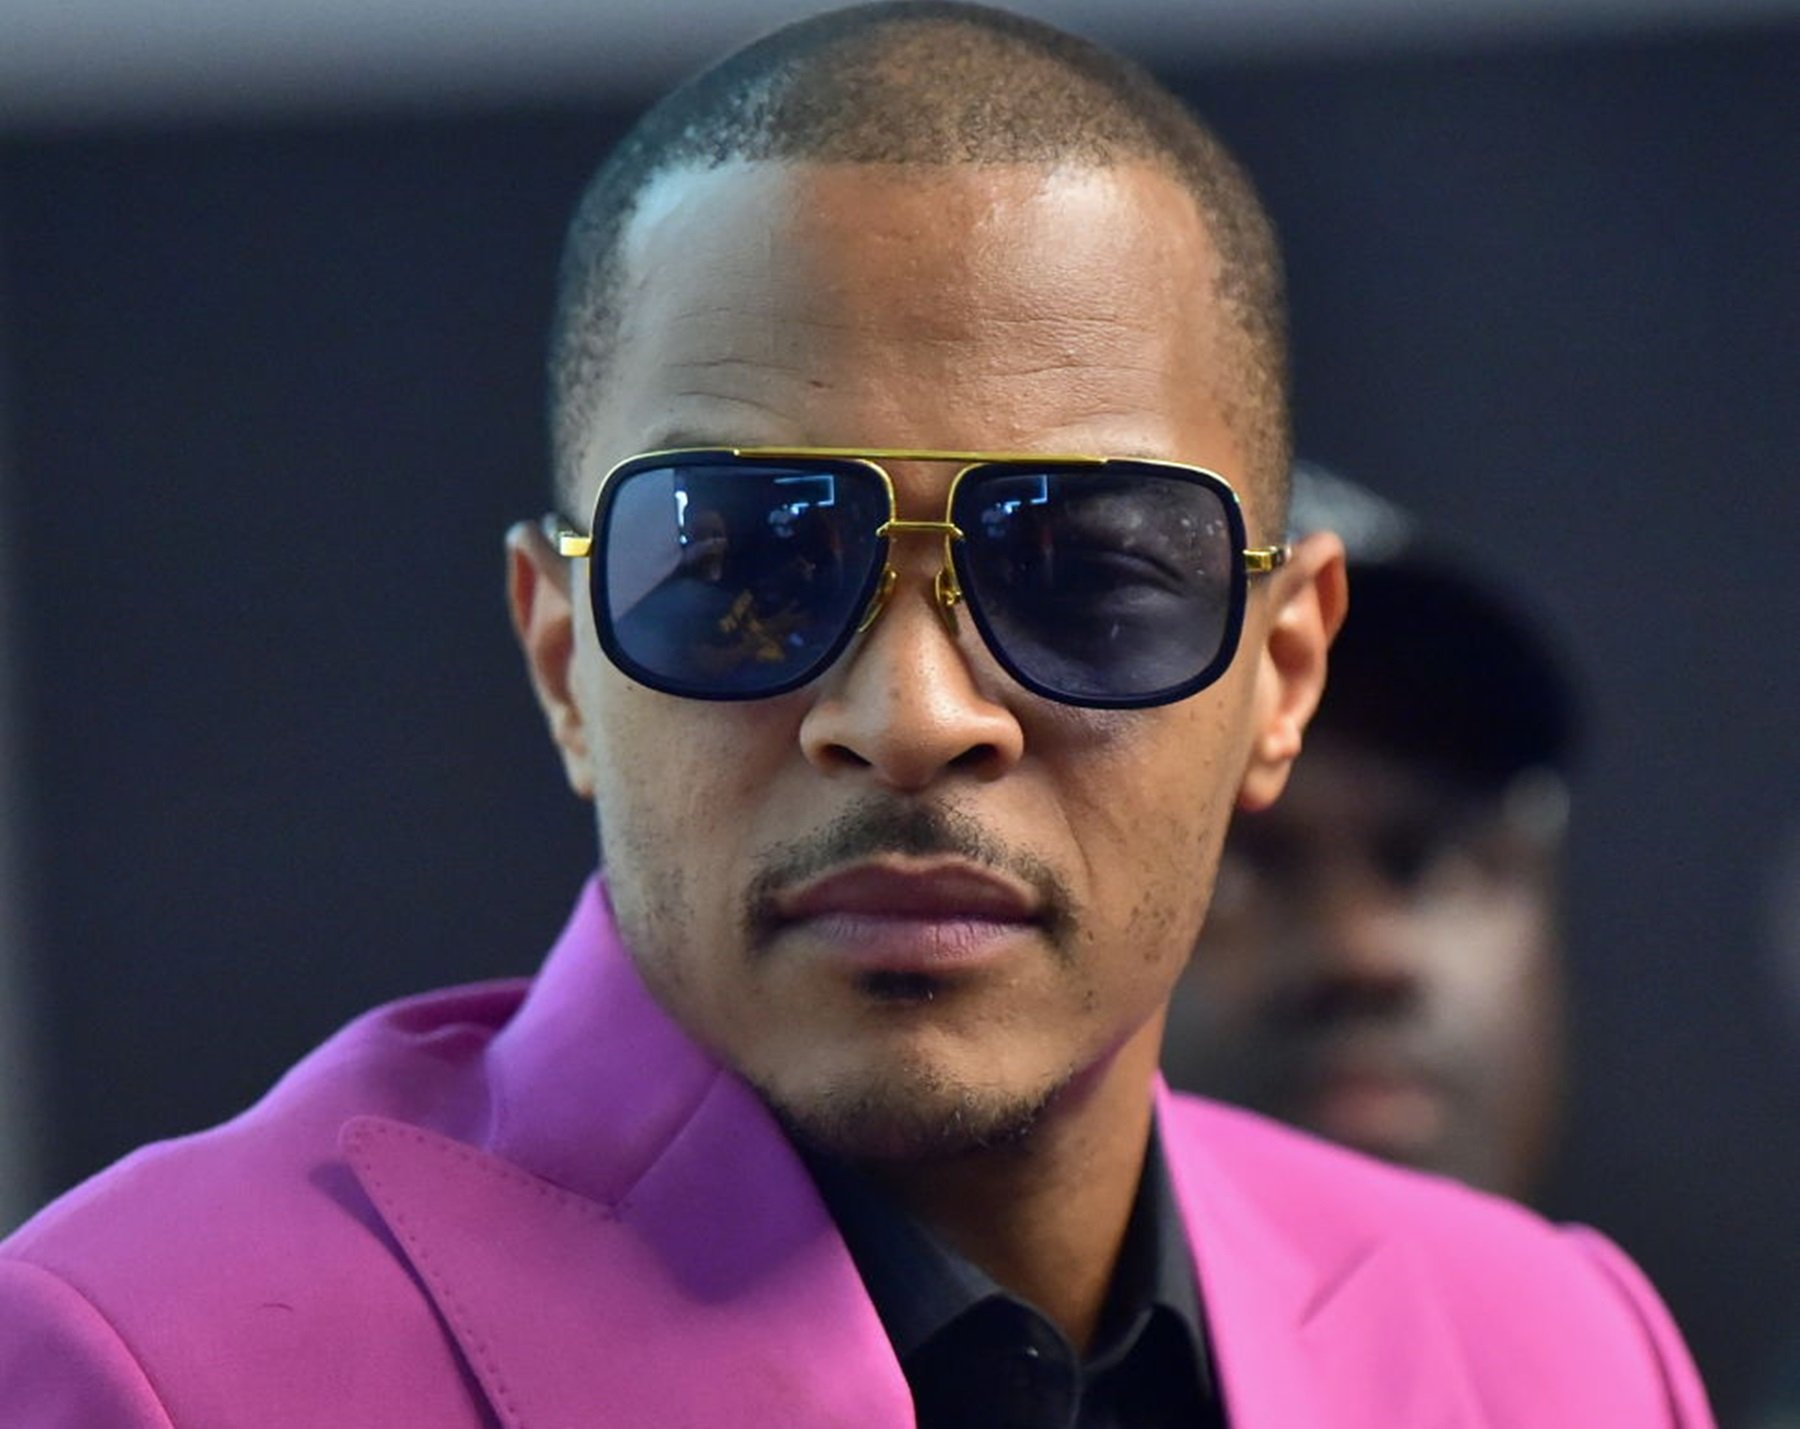 T.I. Shares A Throwback Photo Since He Was A Kid And Fans Are Laughing Their Hearts Out – See The Photo